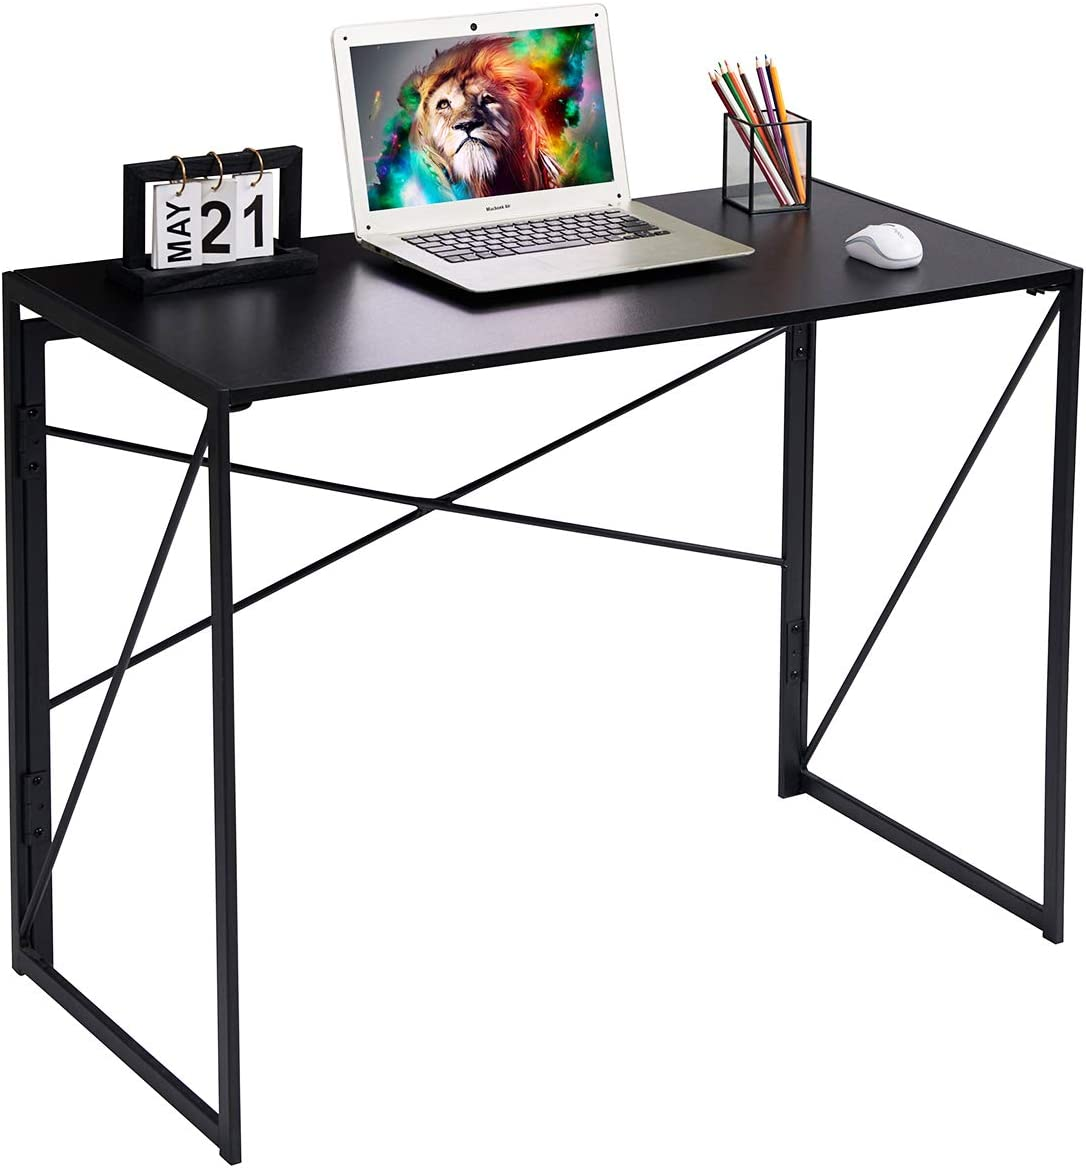 Writing Computer Desk Modern Simple Study Desk Industrial Style Folding Laptop Table for Home Office Notebook Desk Black